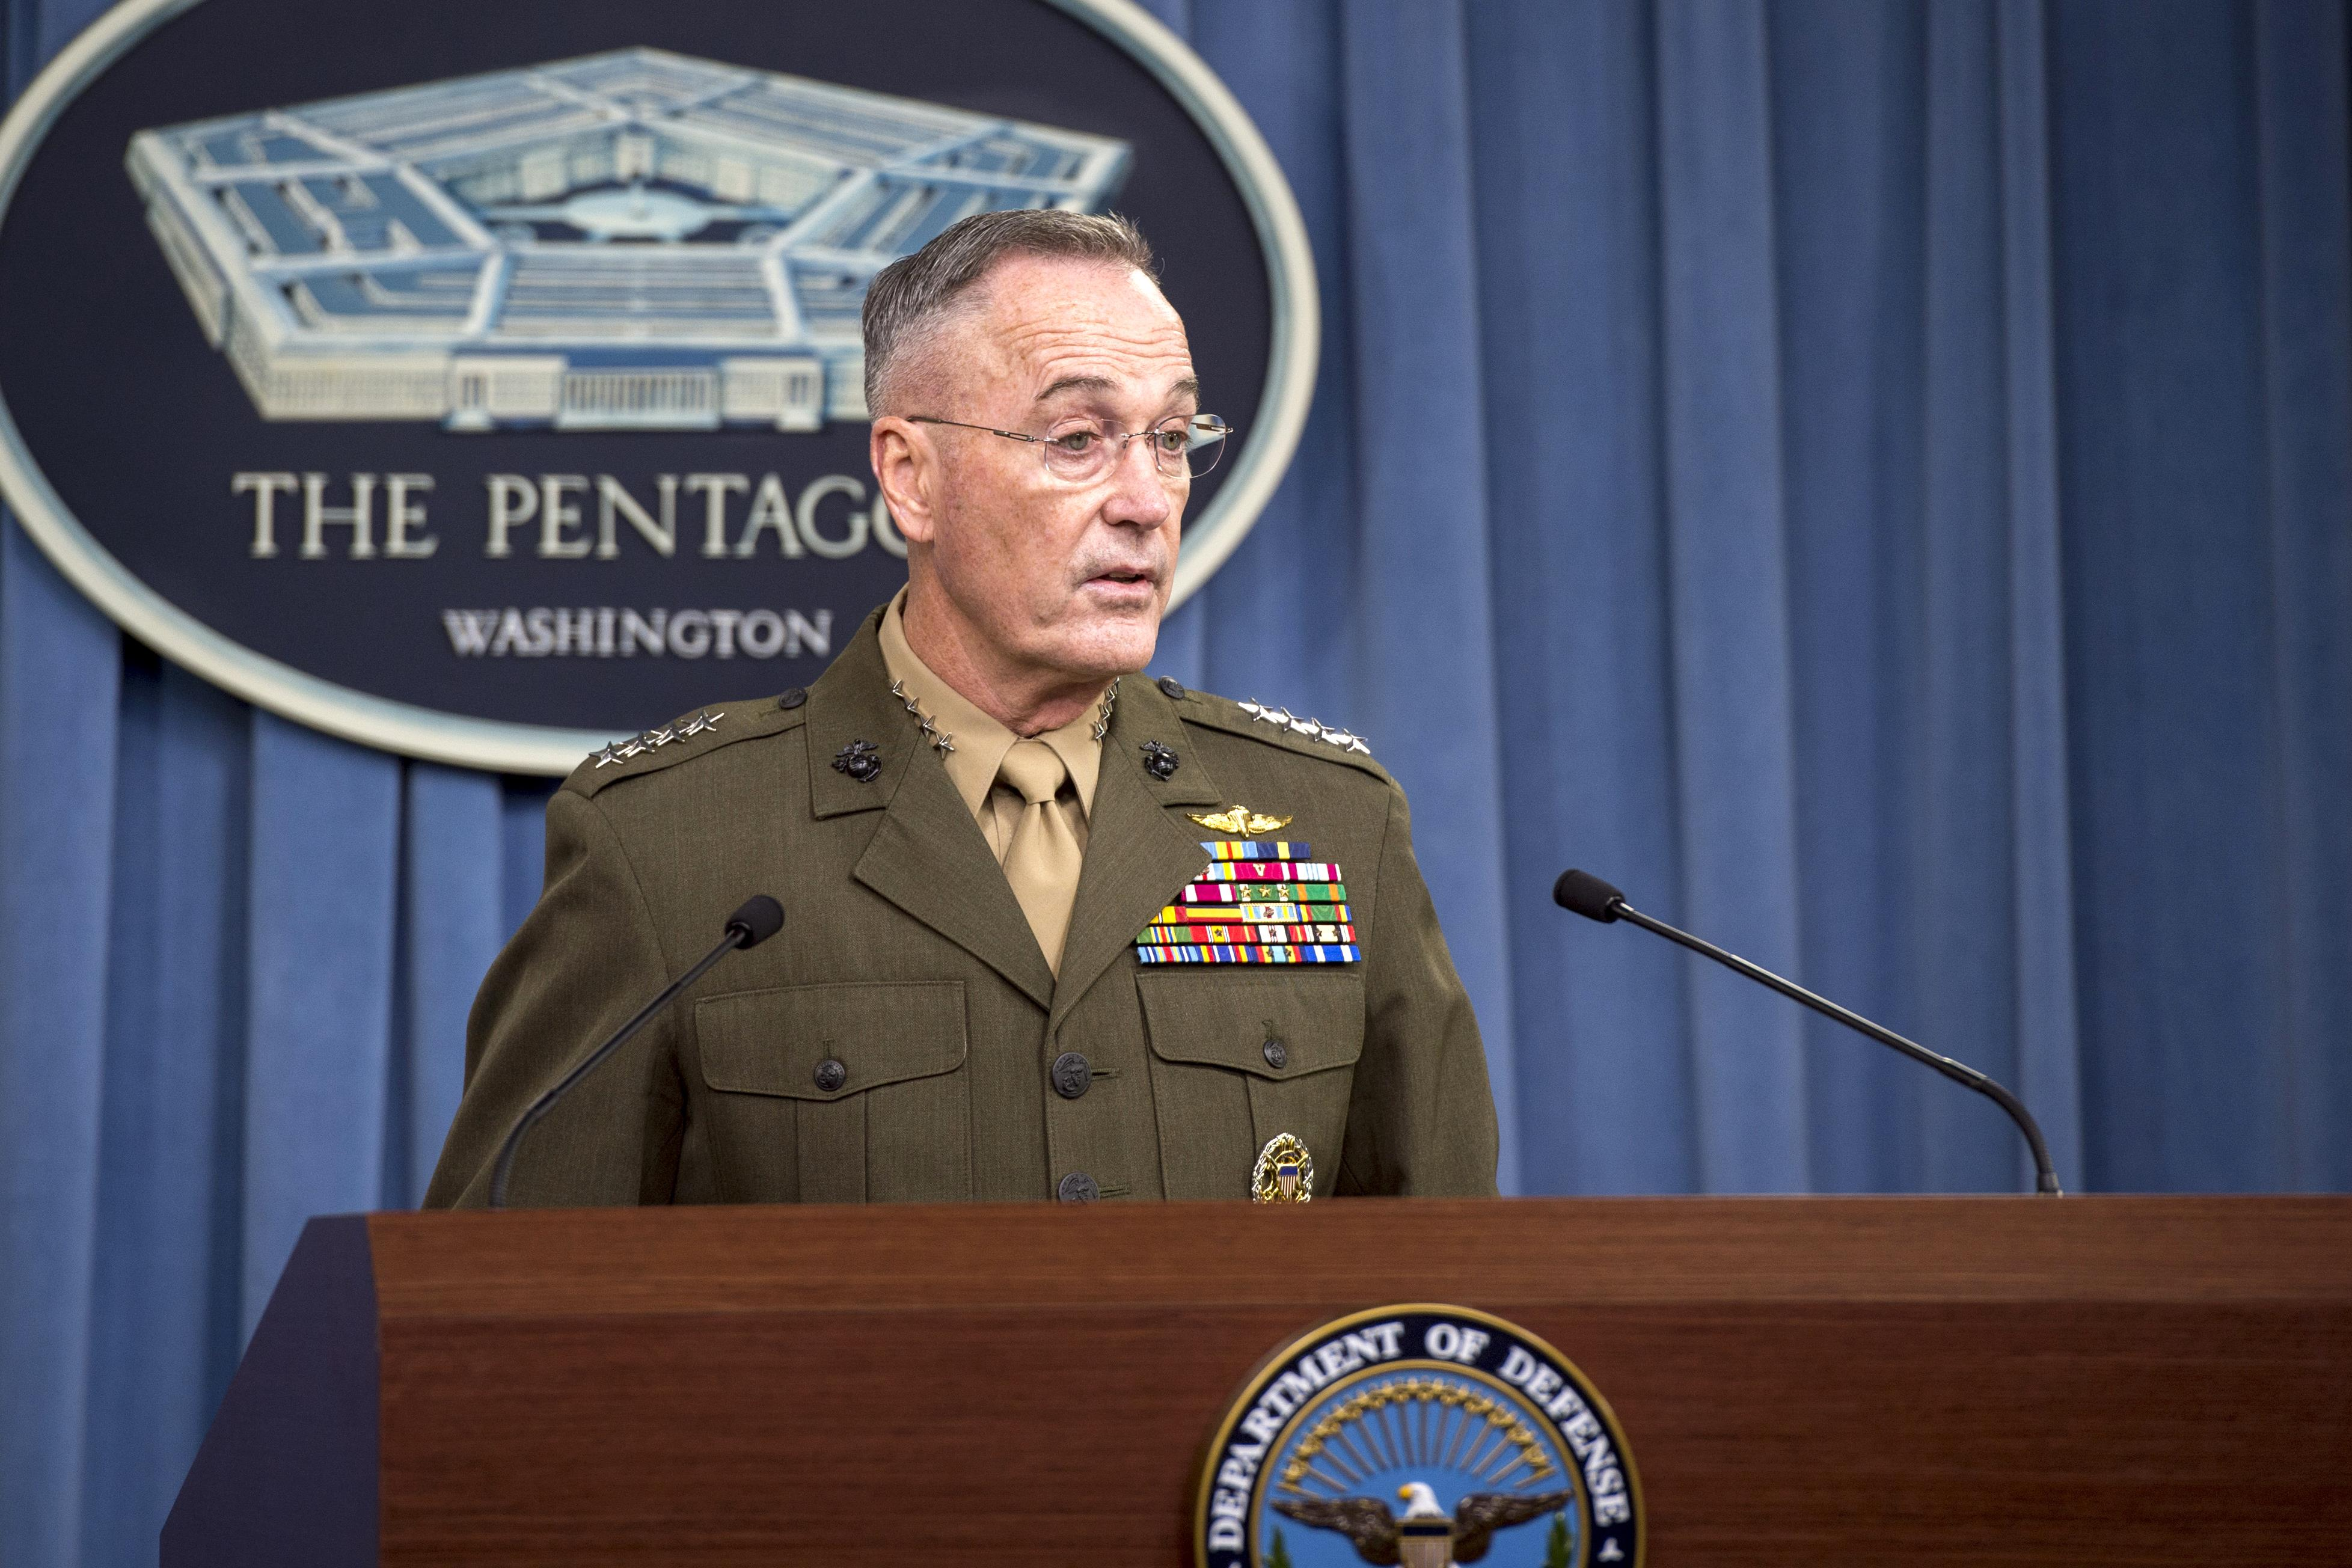 Chairman of the Joint Chiefs of Staff U.S. Marine Corps Gen. Joe Dunford speaks with media about recent military operations in Niger during a briefing Oct. 23, 2017, at the Pentagon in Washington, D.C. (DOD photo by Air Force Tech. Sgt. Brigitte N. Brantley)